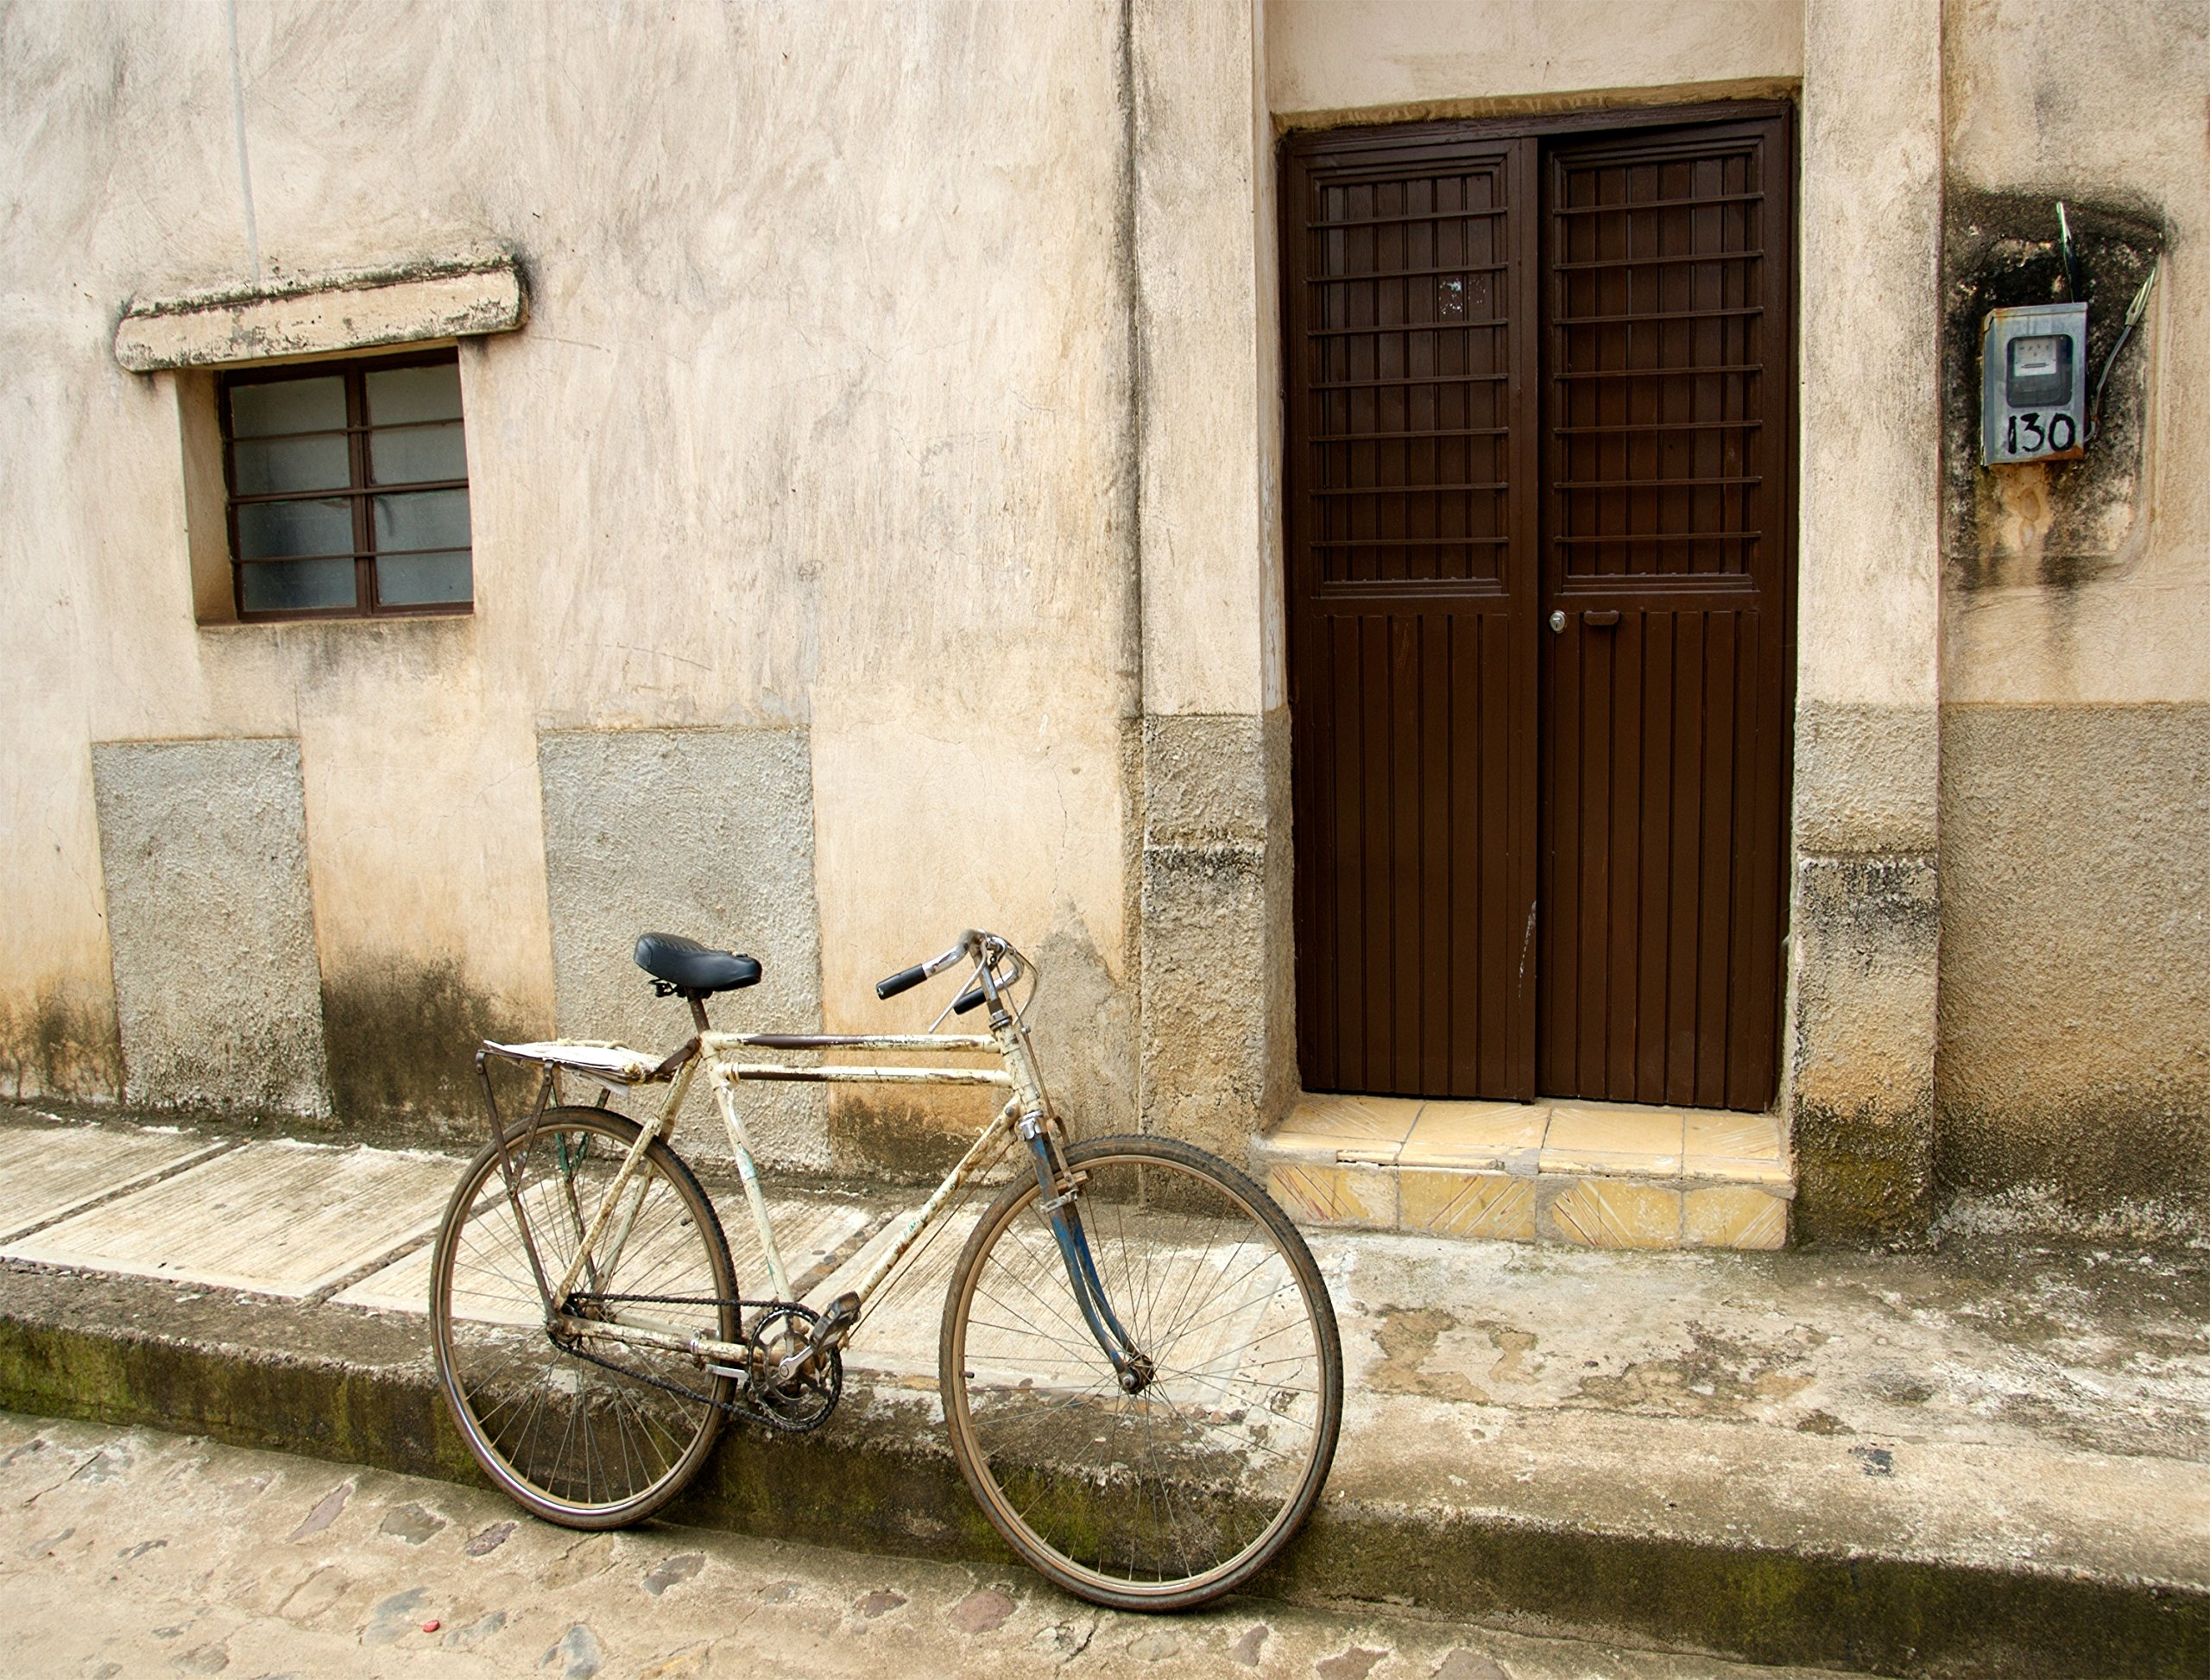 Bicycle in Mexico BIG Art Photo by Verlangieri